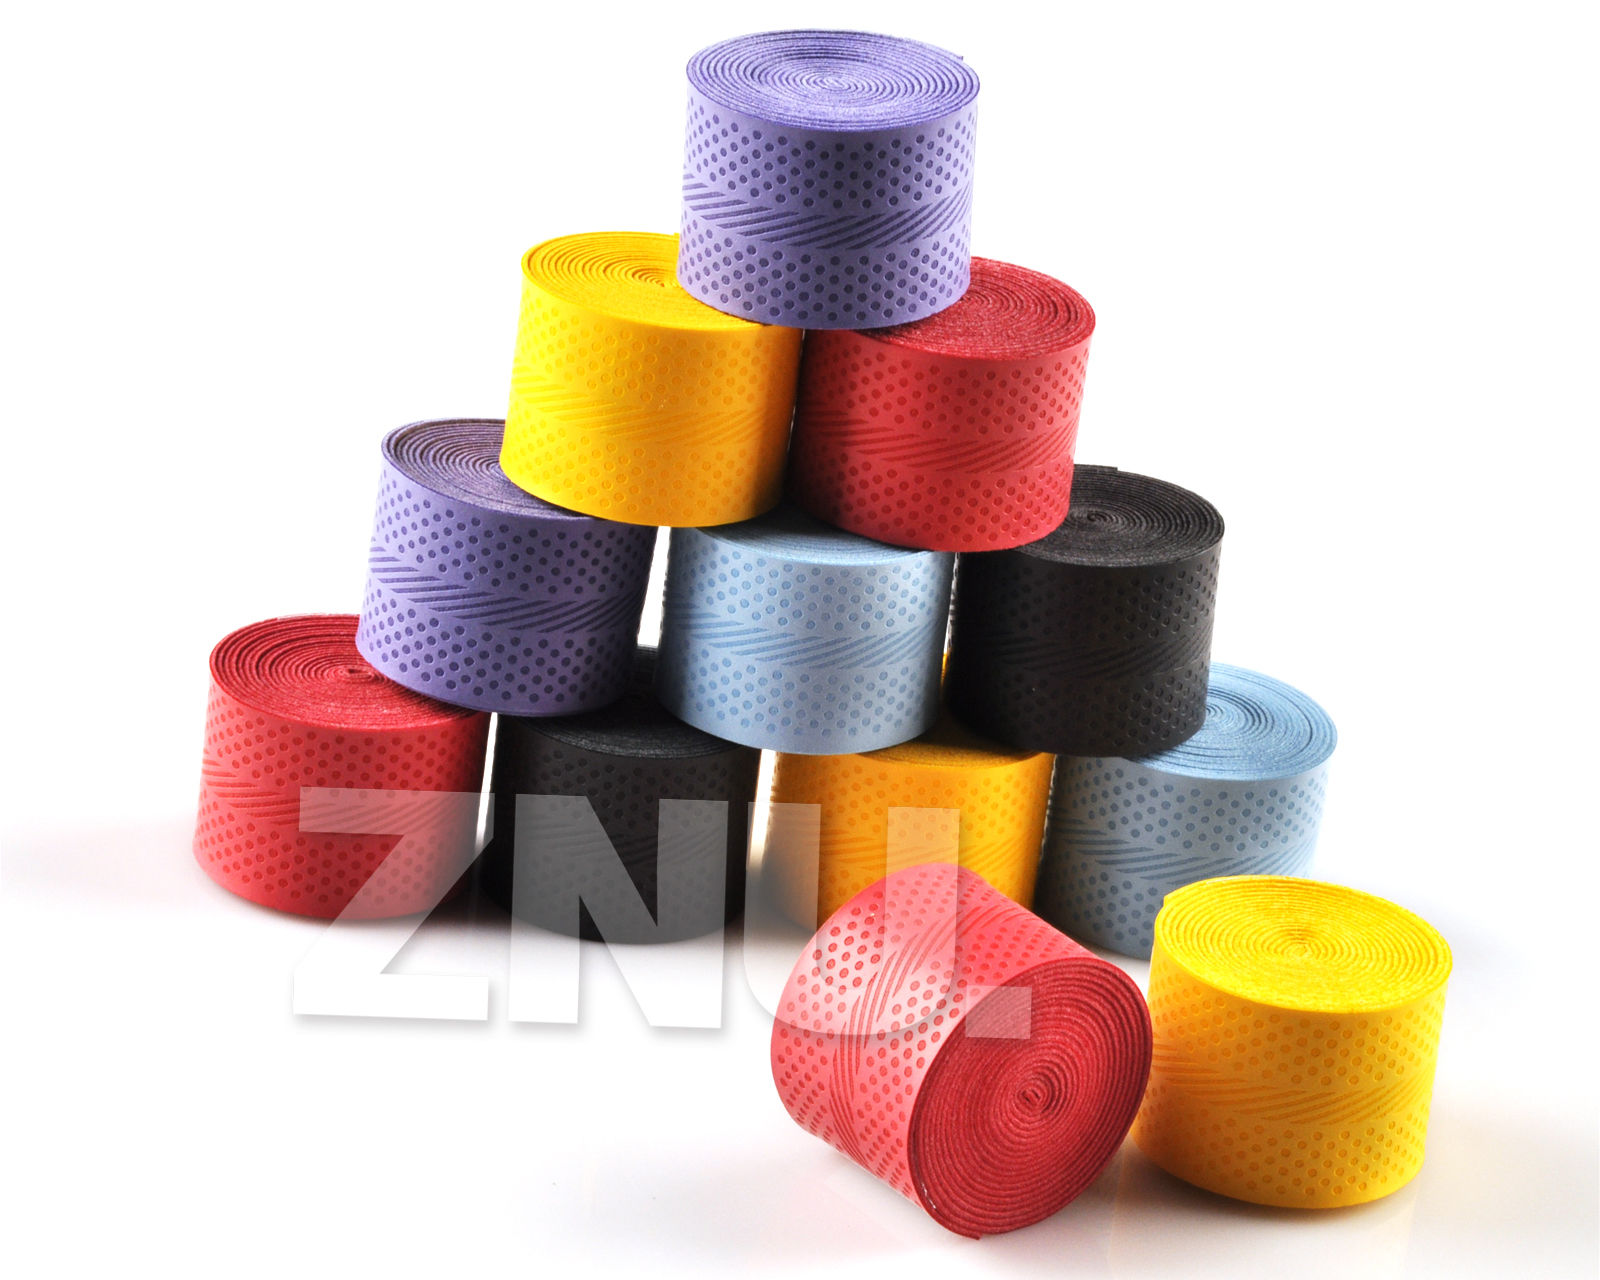 VIM Outdoor 2PCs Sweatband Badminton Tennis Sports Over Grip Griffband Anti-slip Overgrip Racket Fishing Tape Multicolor Sweat